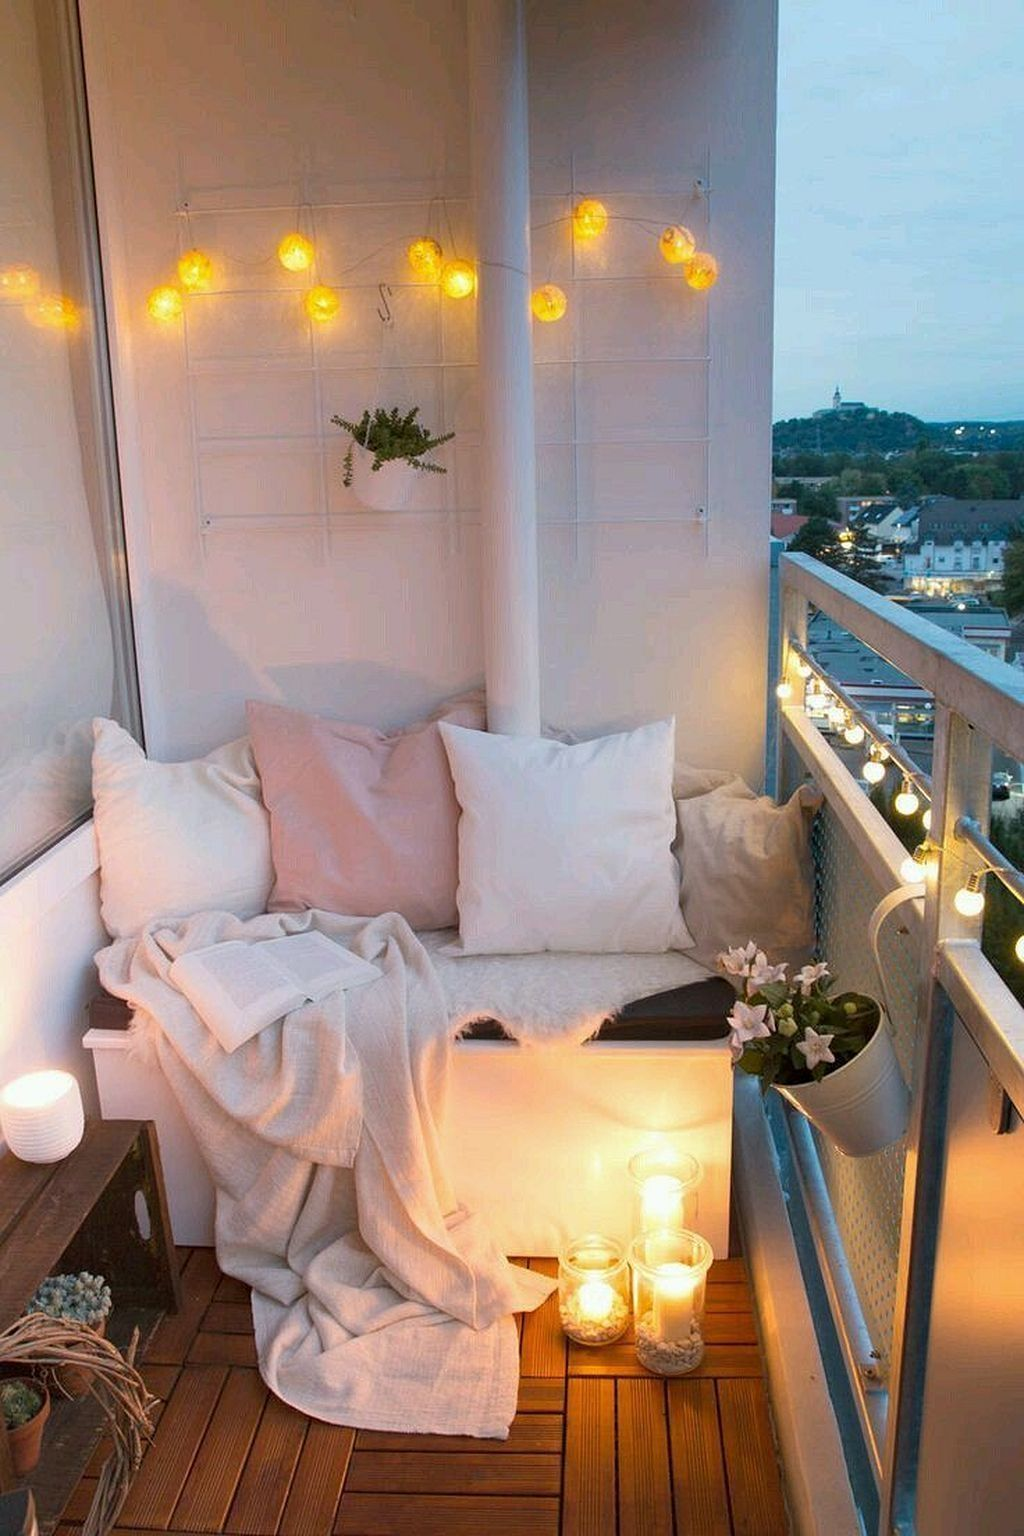 49 Awesome Apartment Balcony Decorating Ideas images